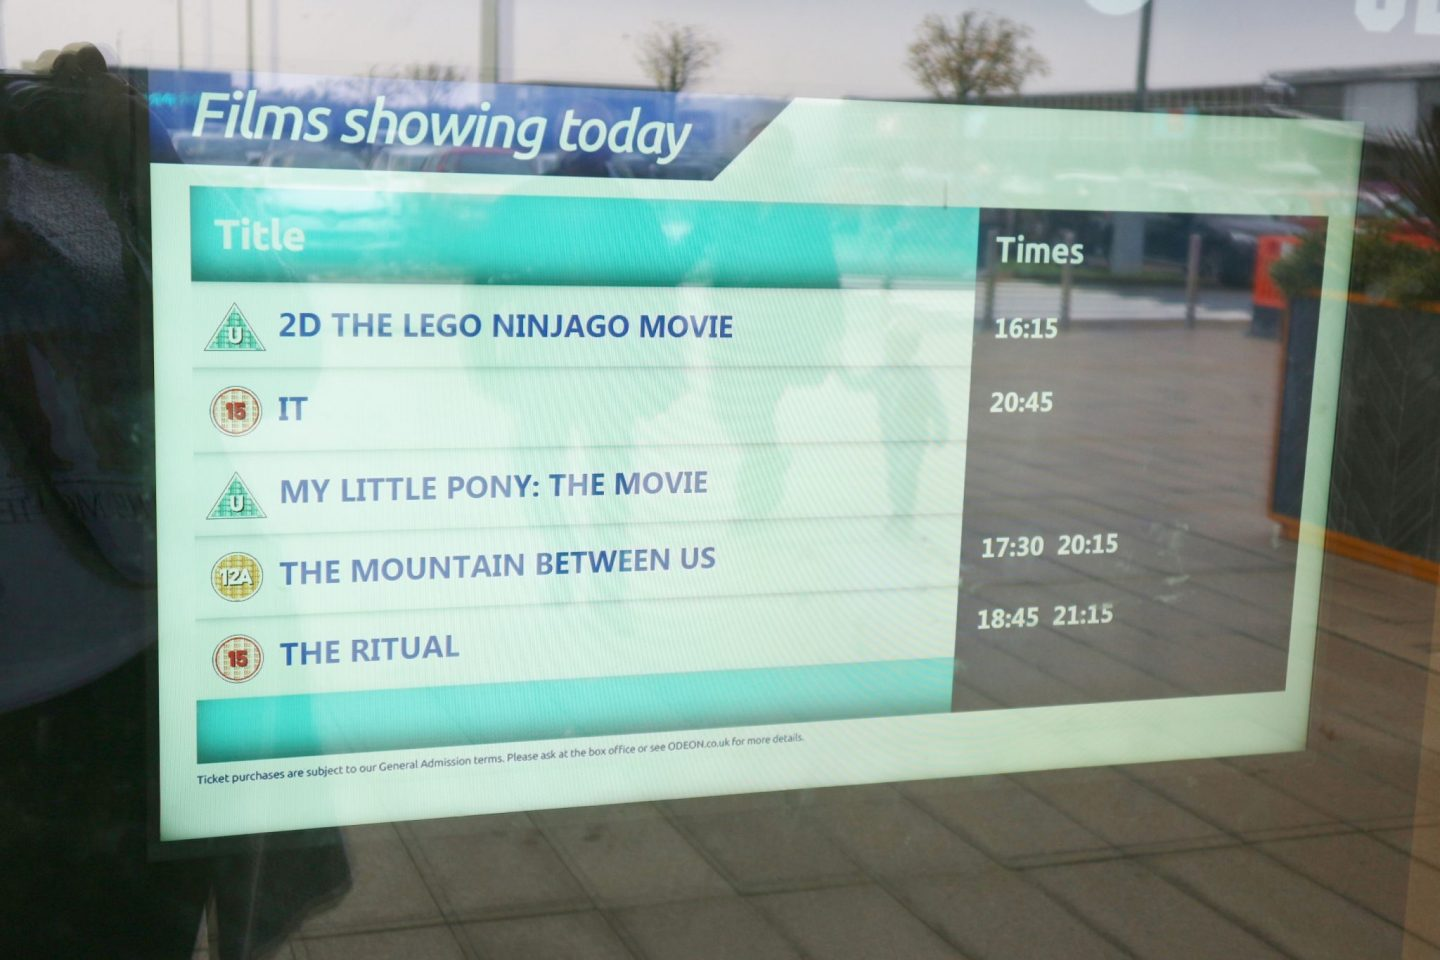 odeon now showing board